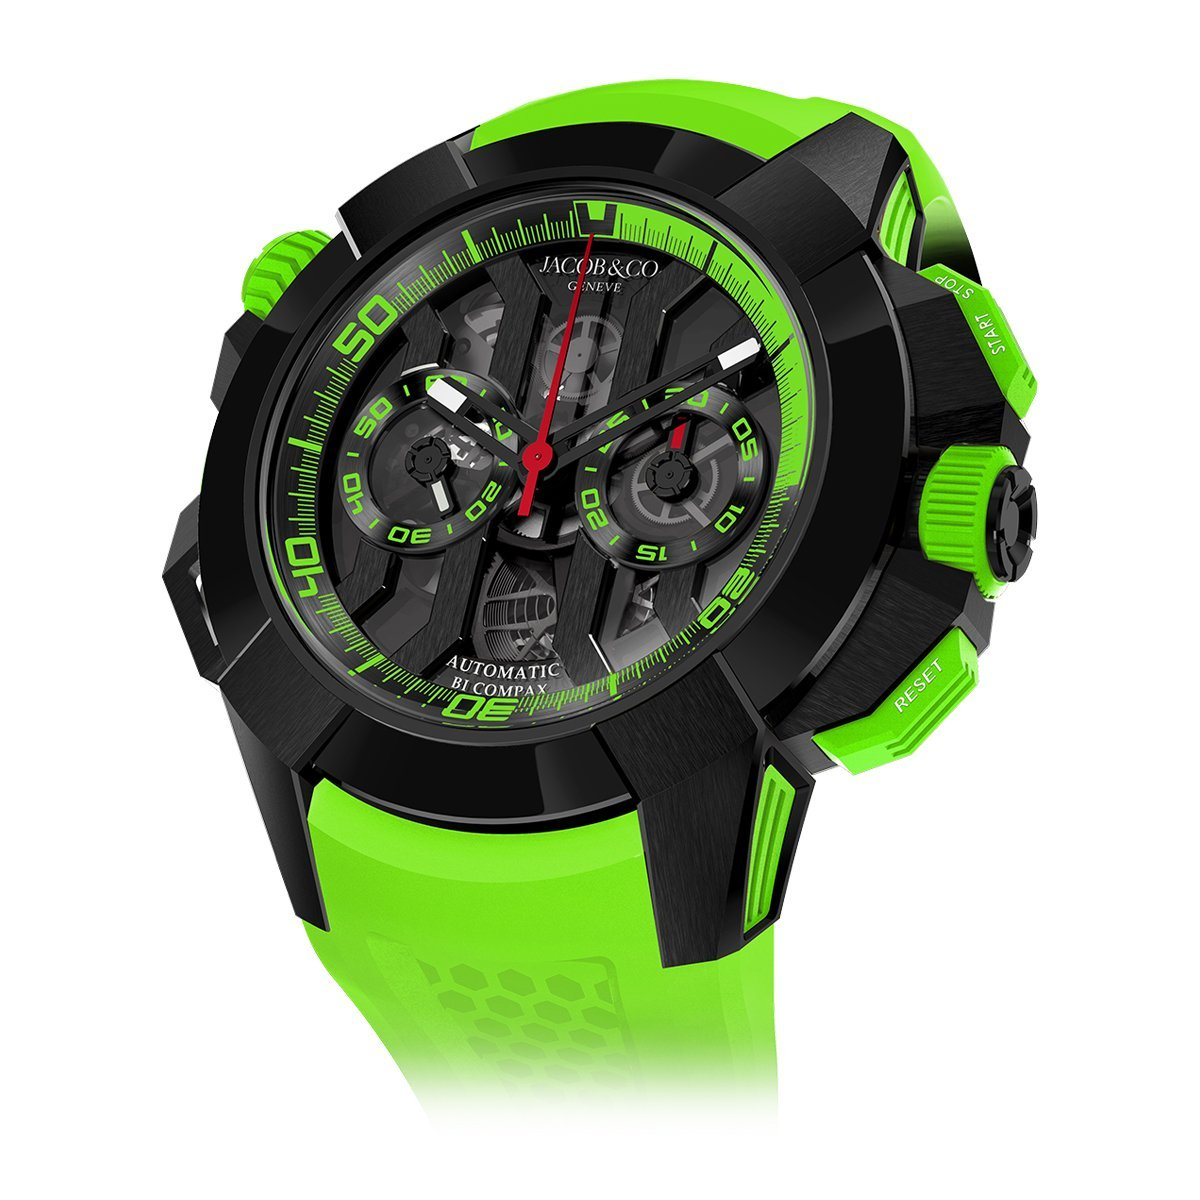 Jacob & Co. Epic X Chronograph Green - Watches & Crystals